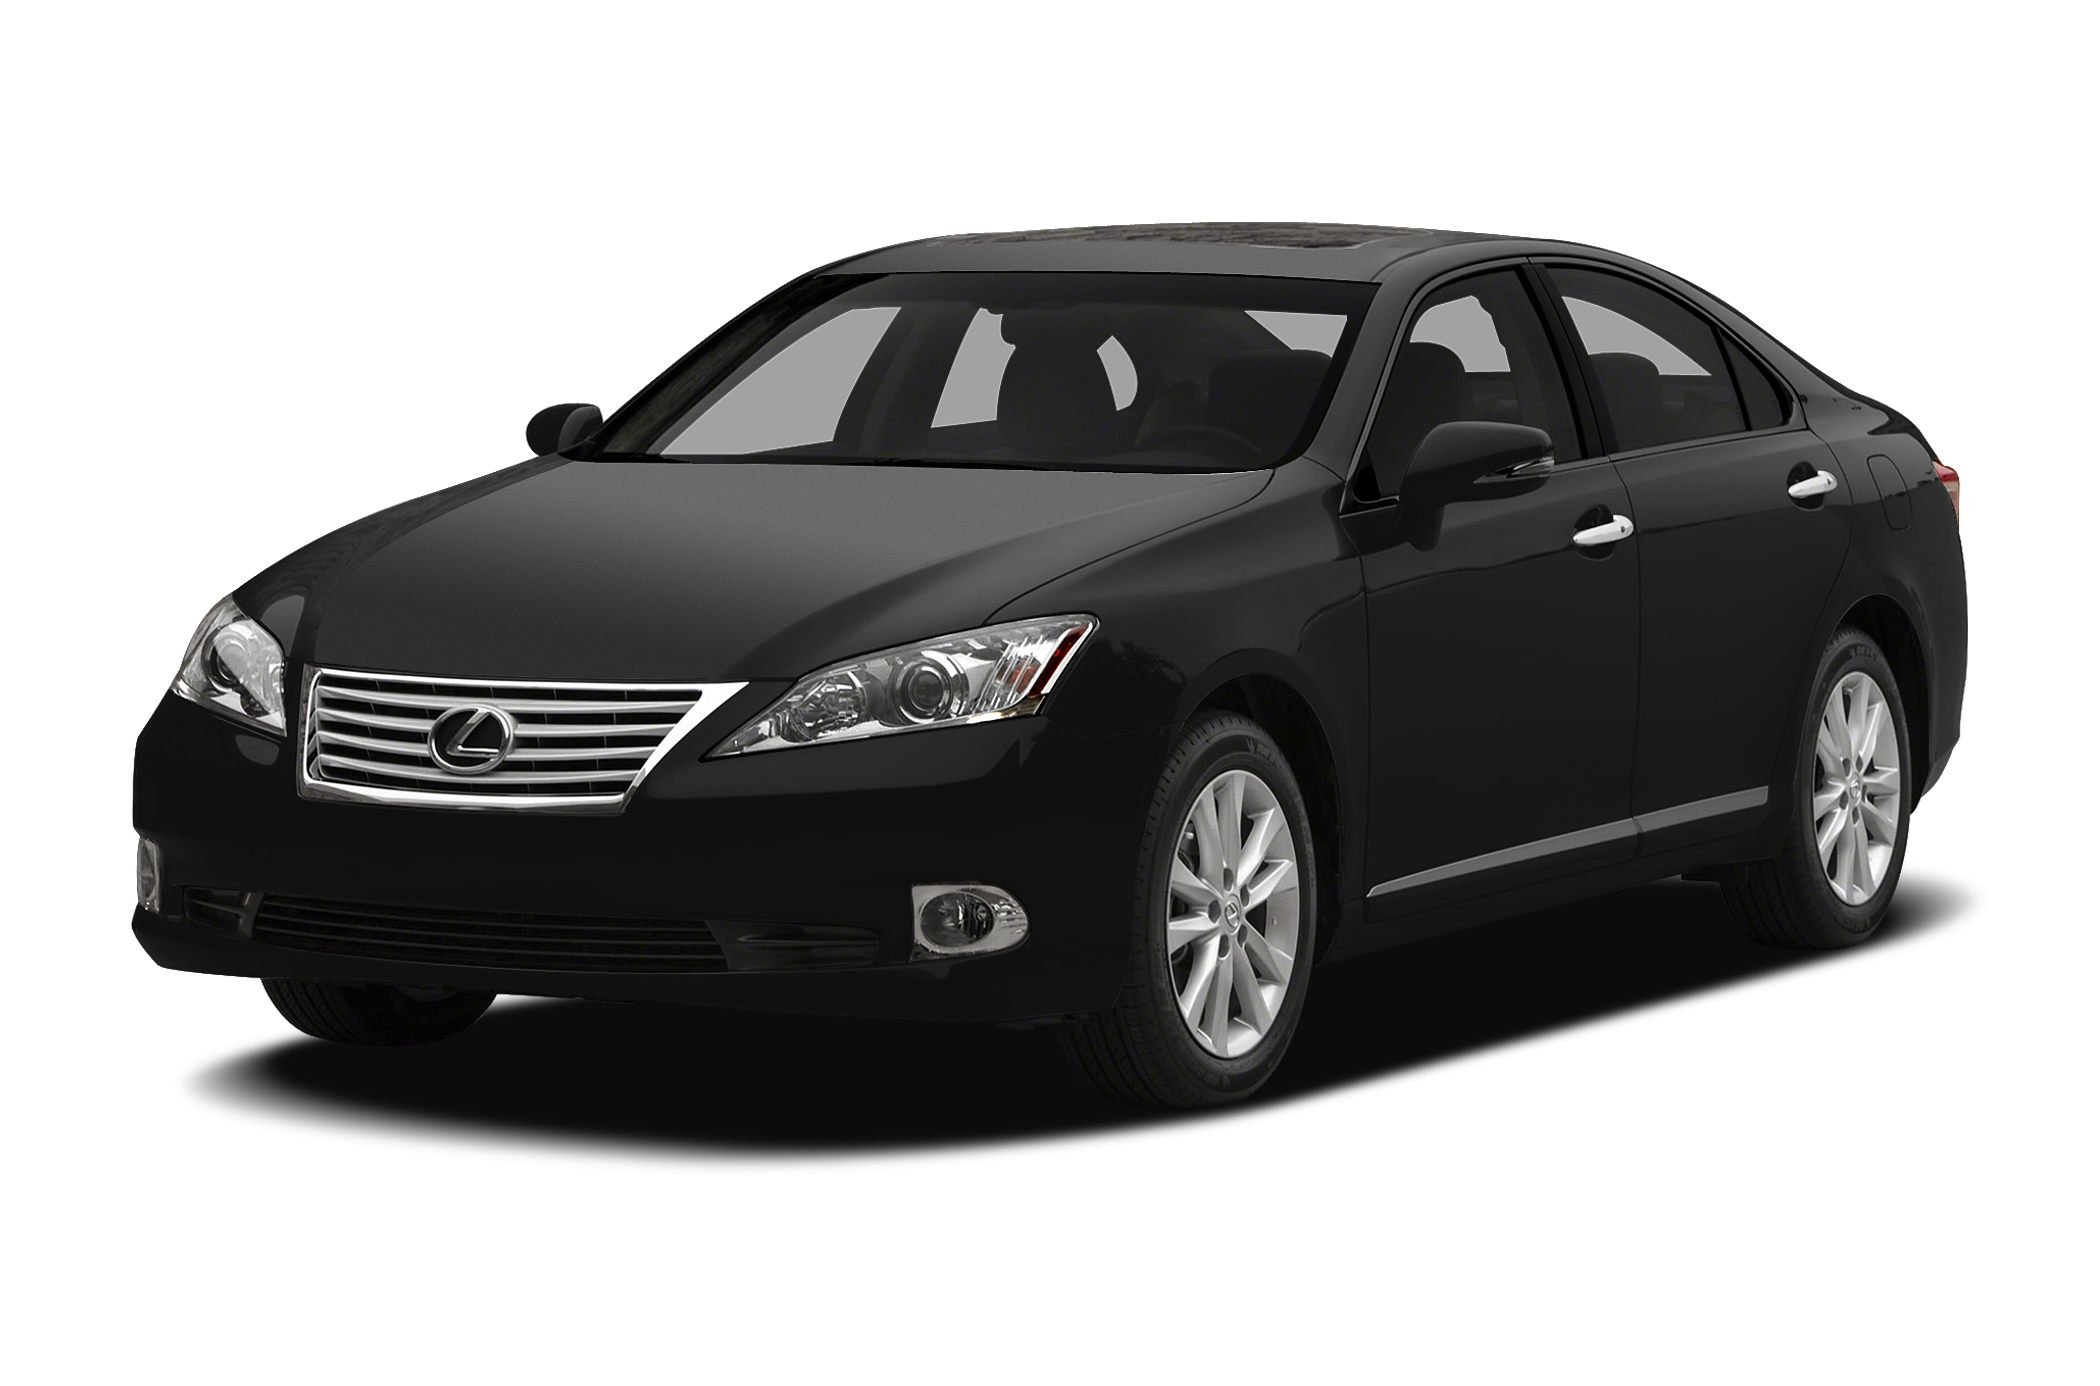 2011 Lexus ES 350 Base Tungsten Pearl 2011 Lexus ES 350 FWD 6-Speed Automatic with Sequential Shif